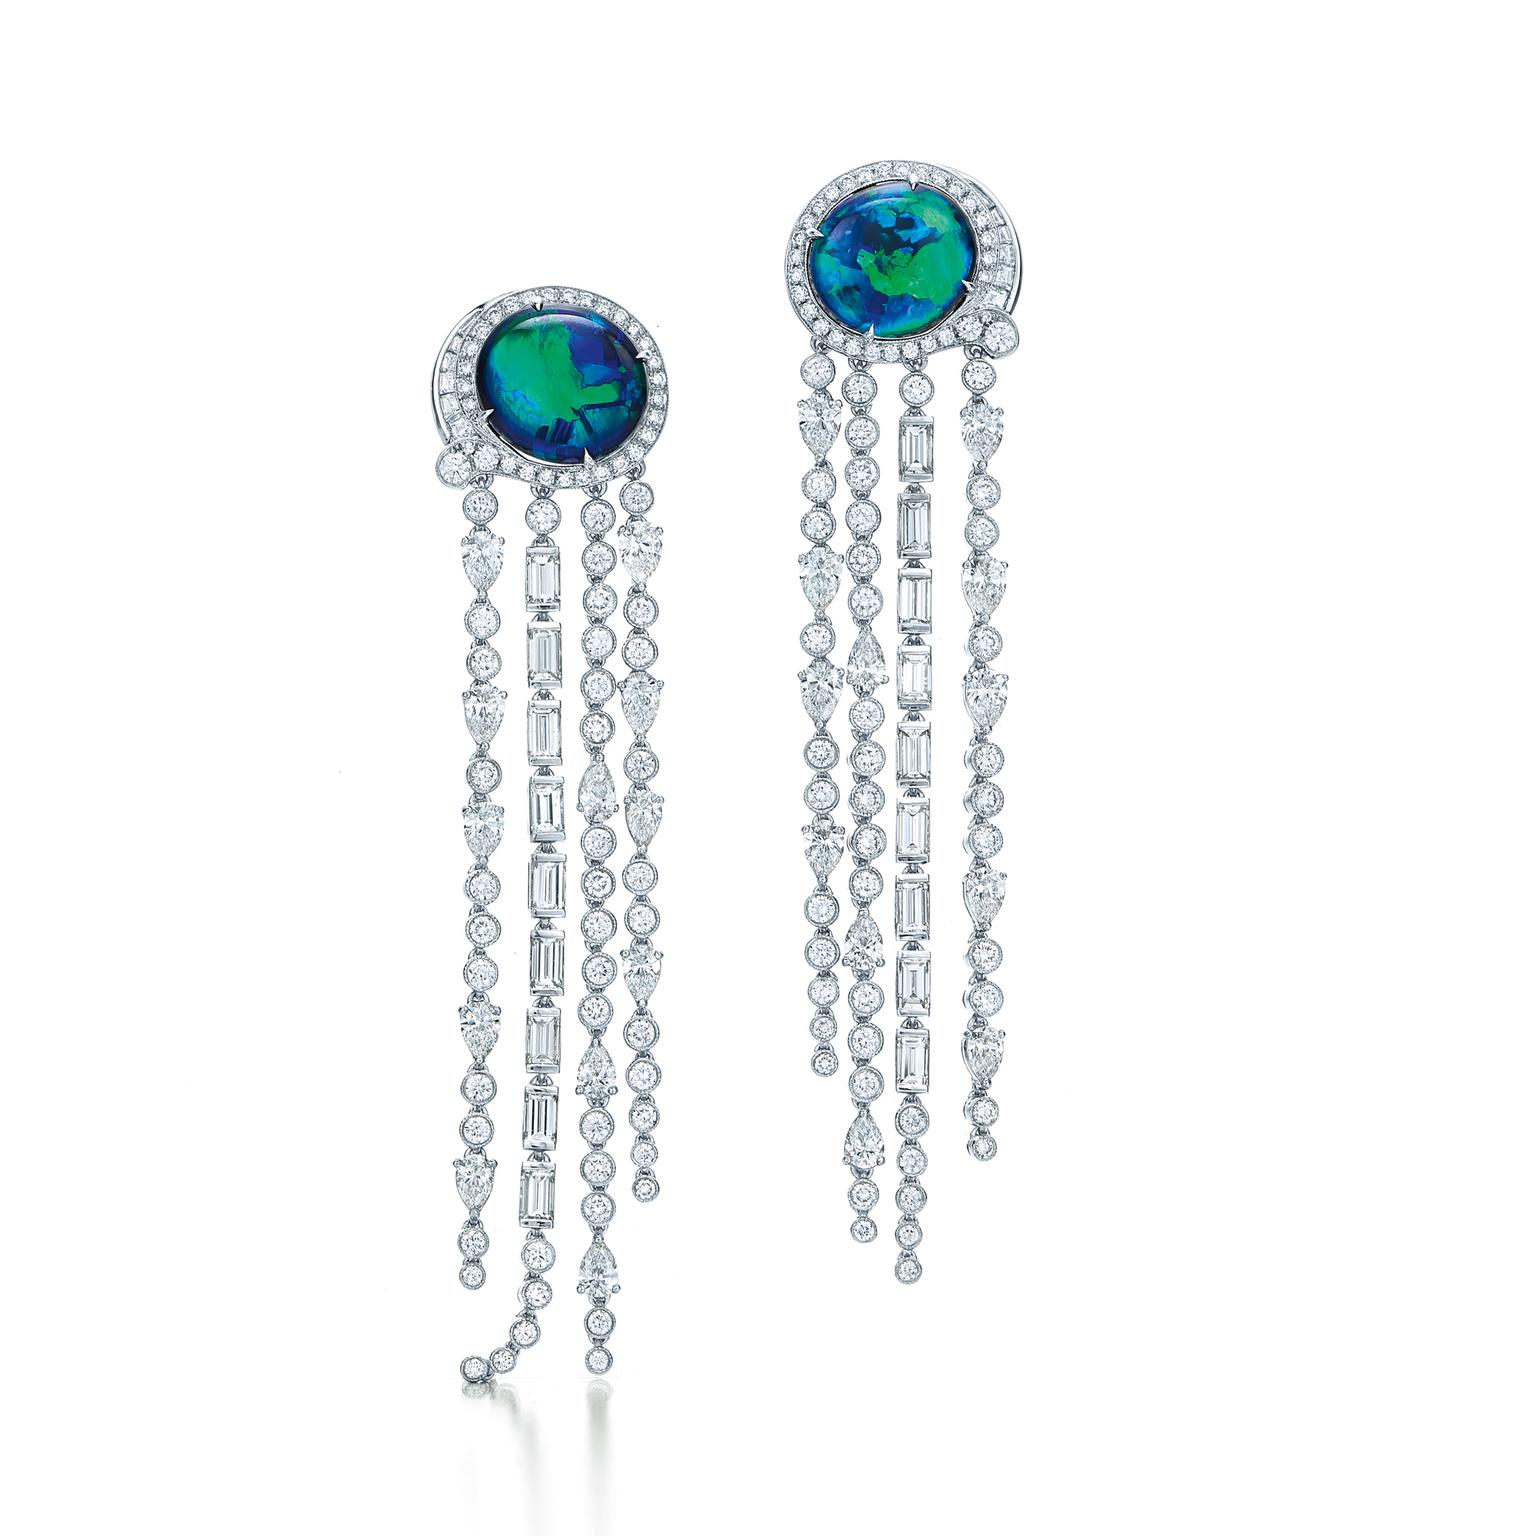 Tiffany Blue Book diamond and opal fringe earrings